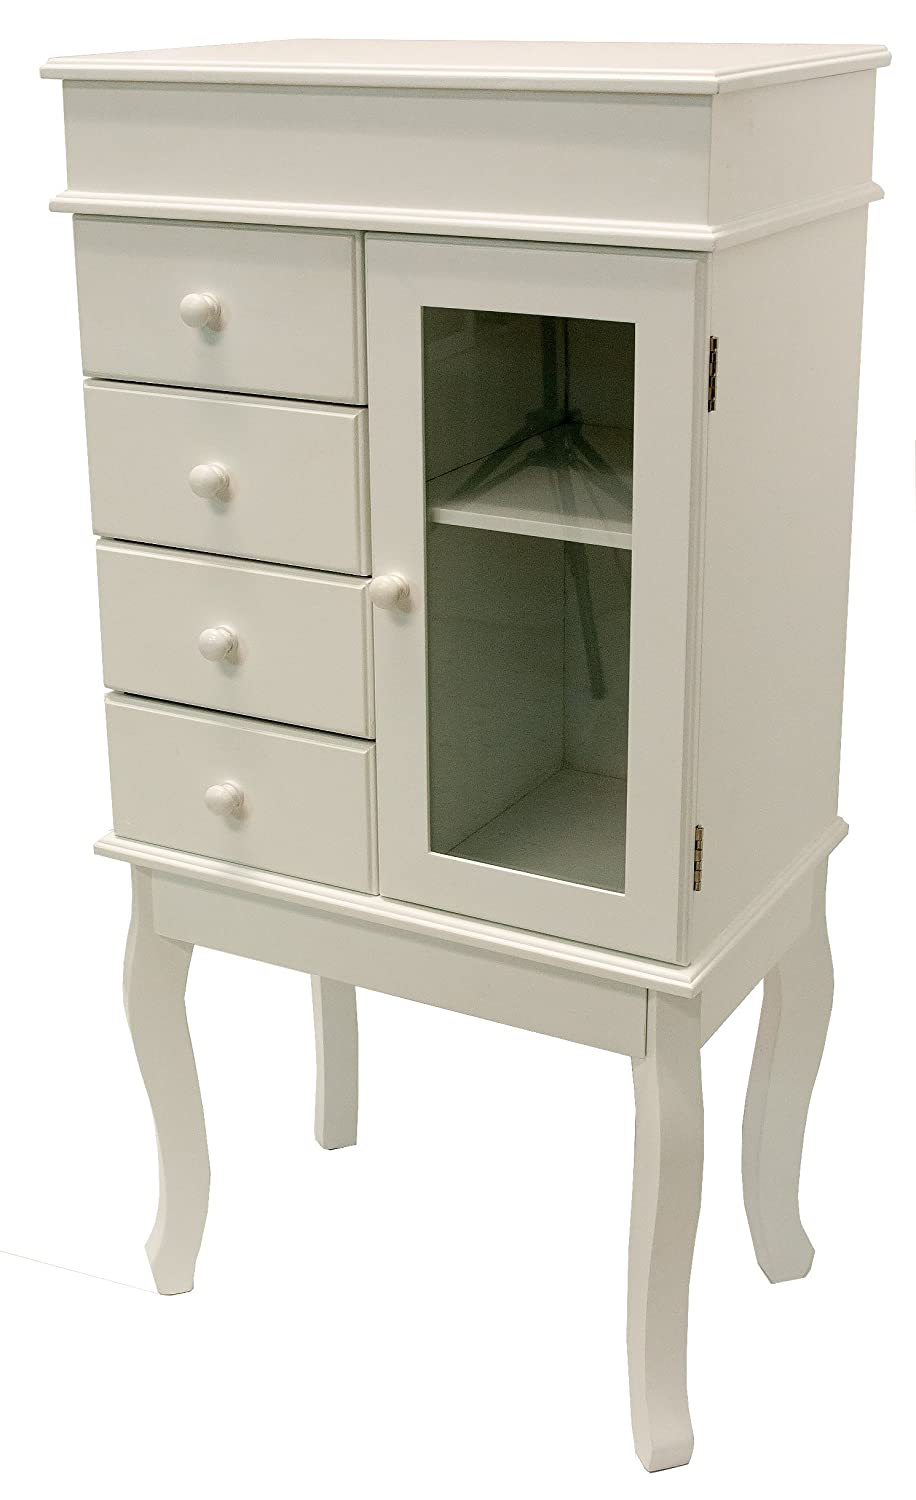 A68192 White Jewellery Armoire Rayes Imports